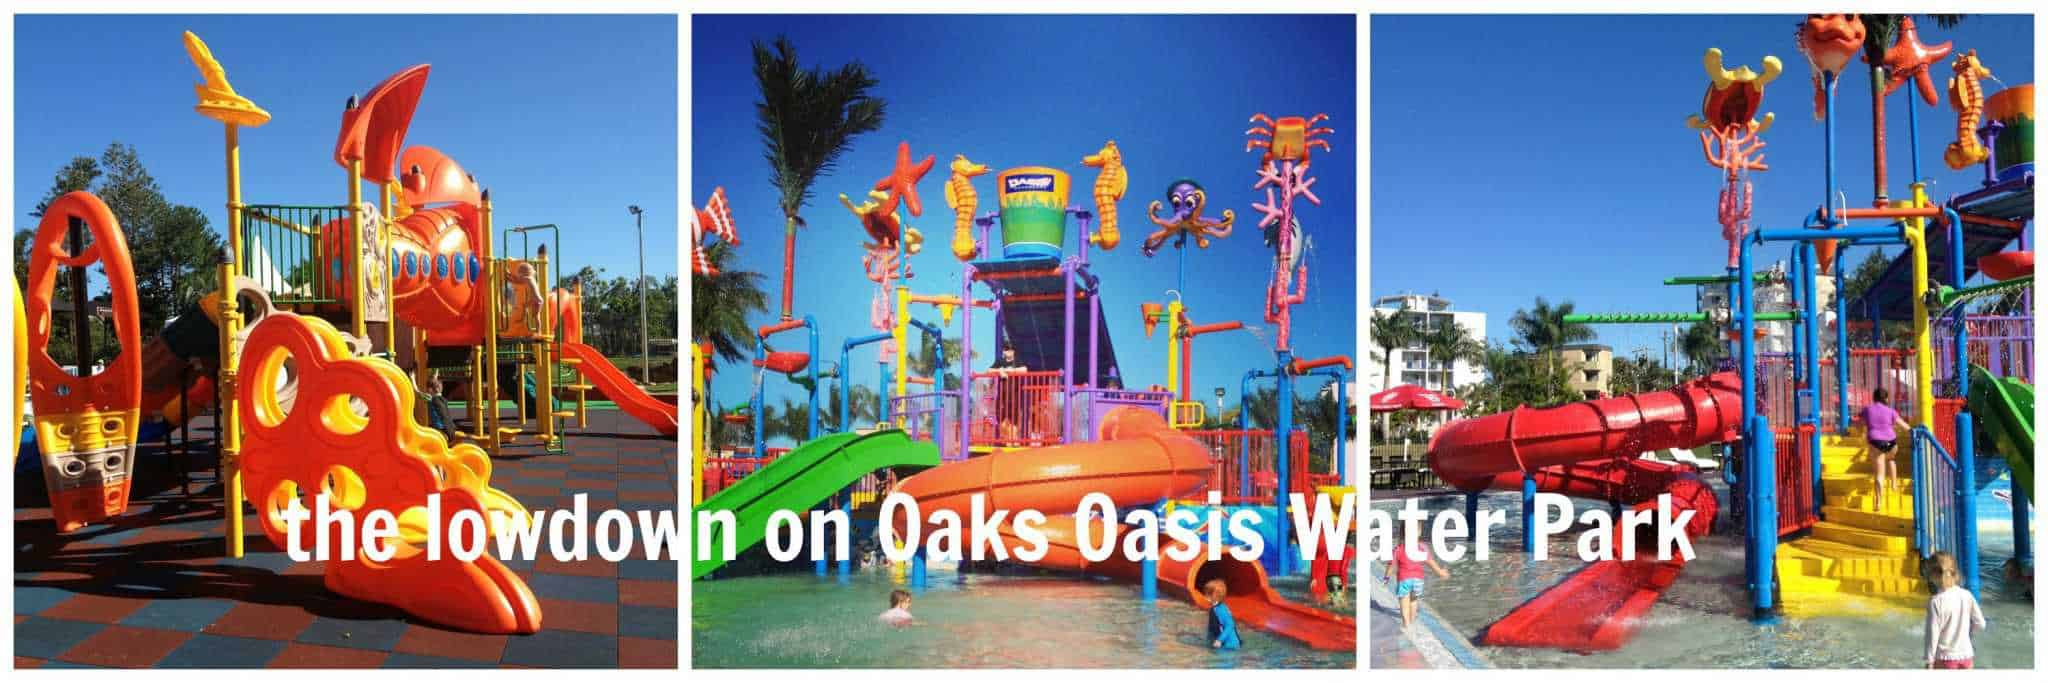 The Lowdown On Oaks Oasis Water Park Cooker And A Looker